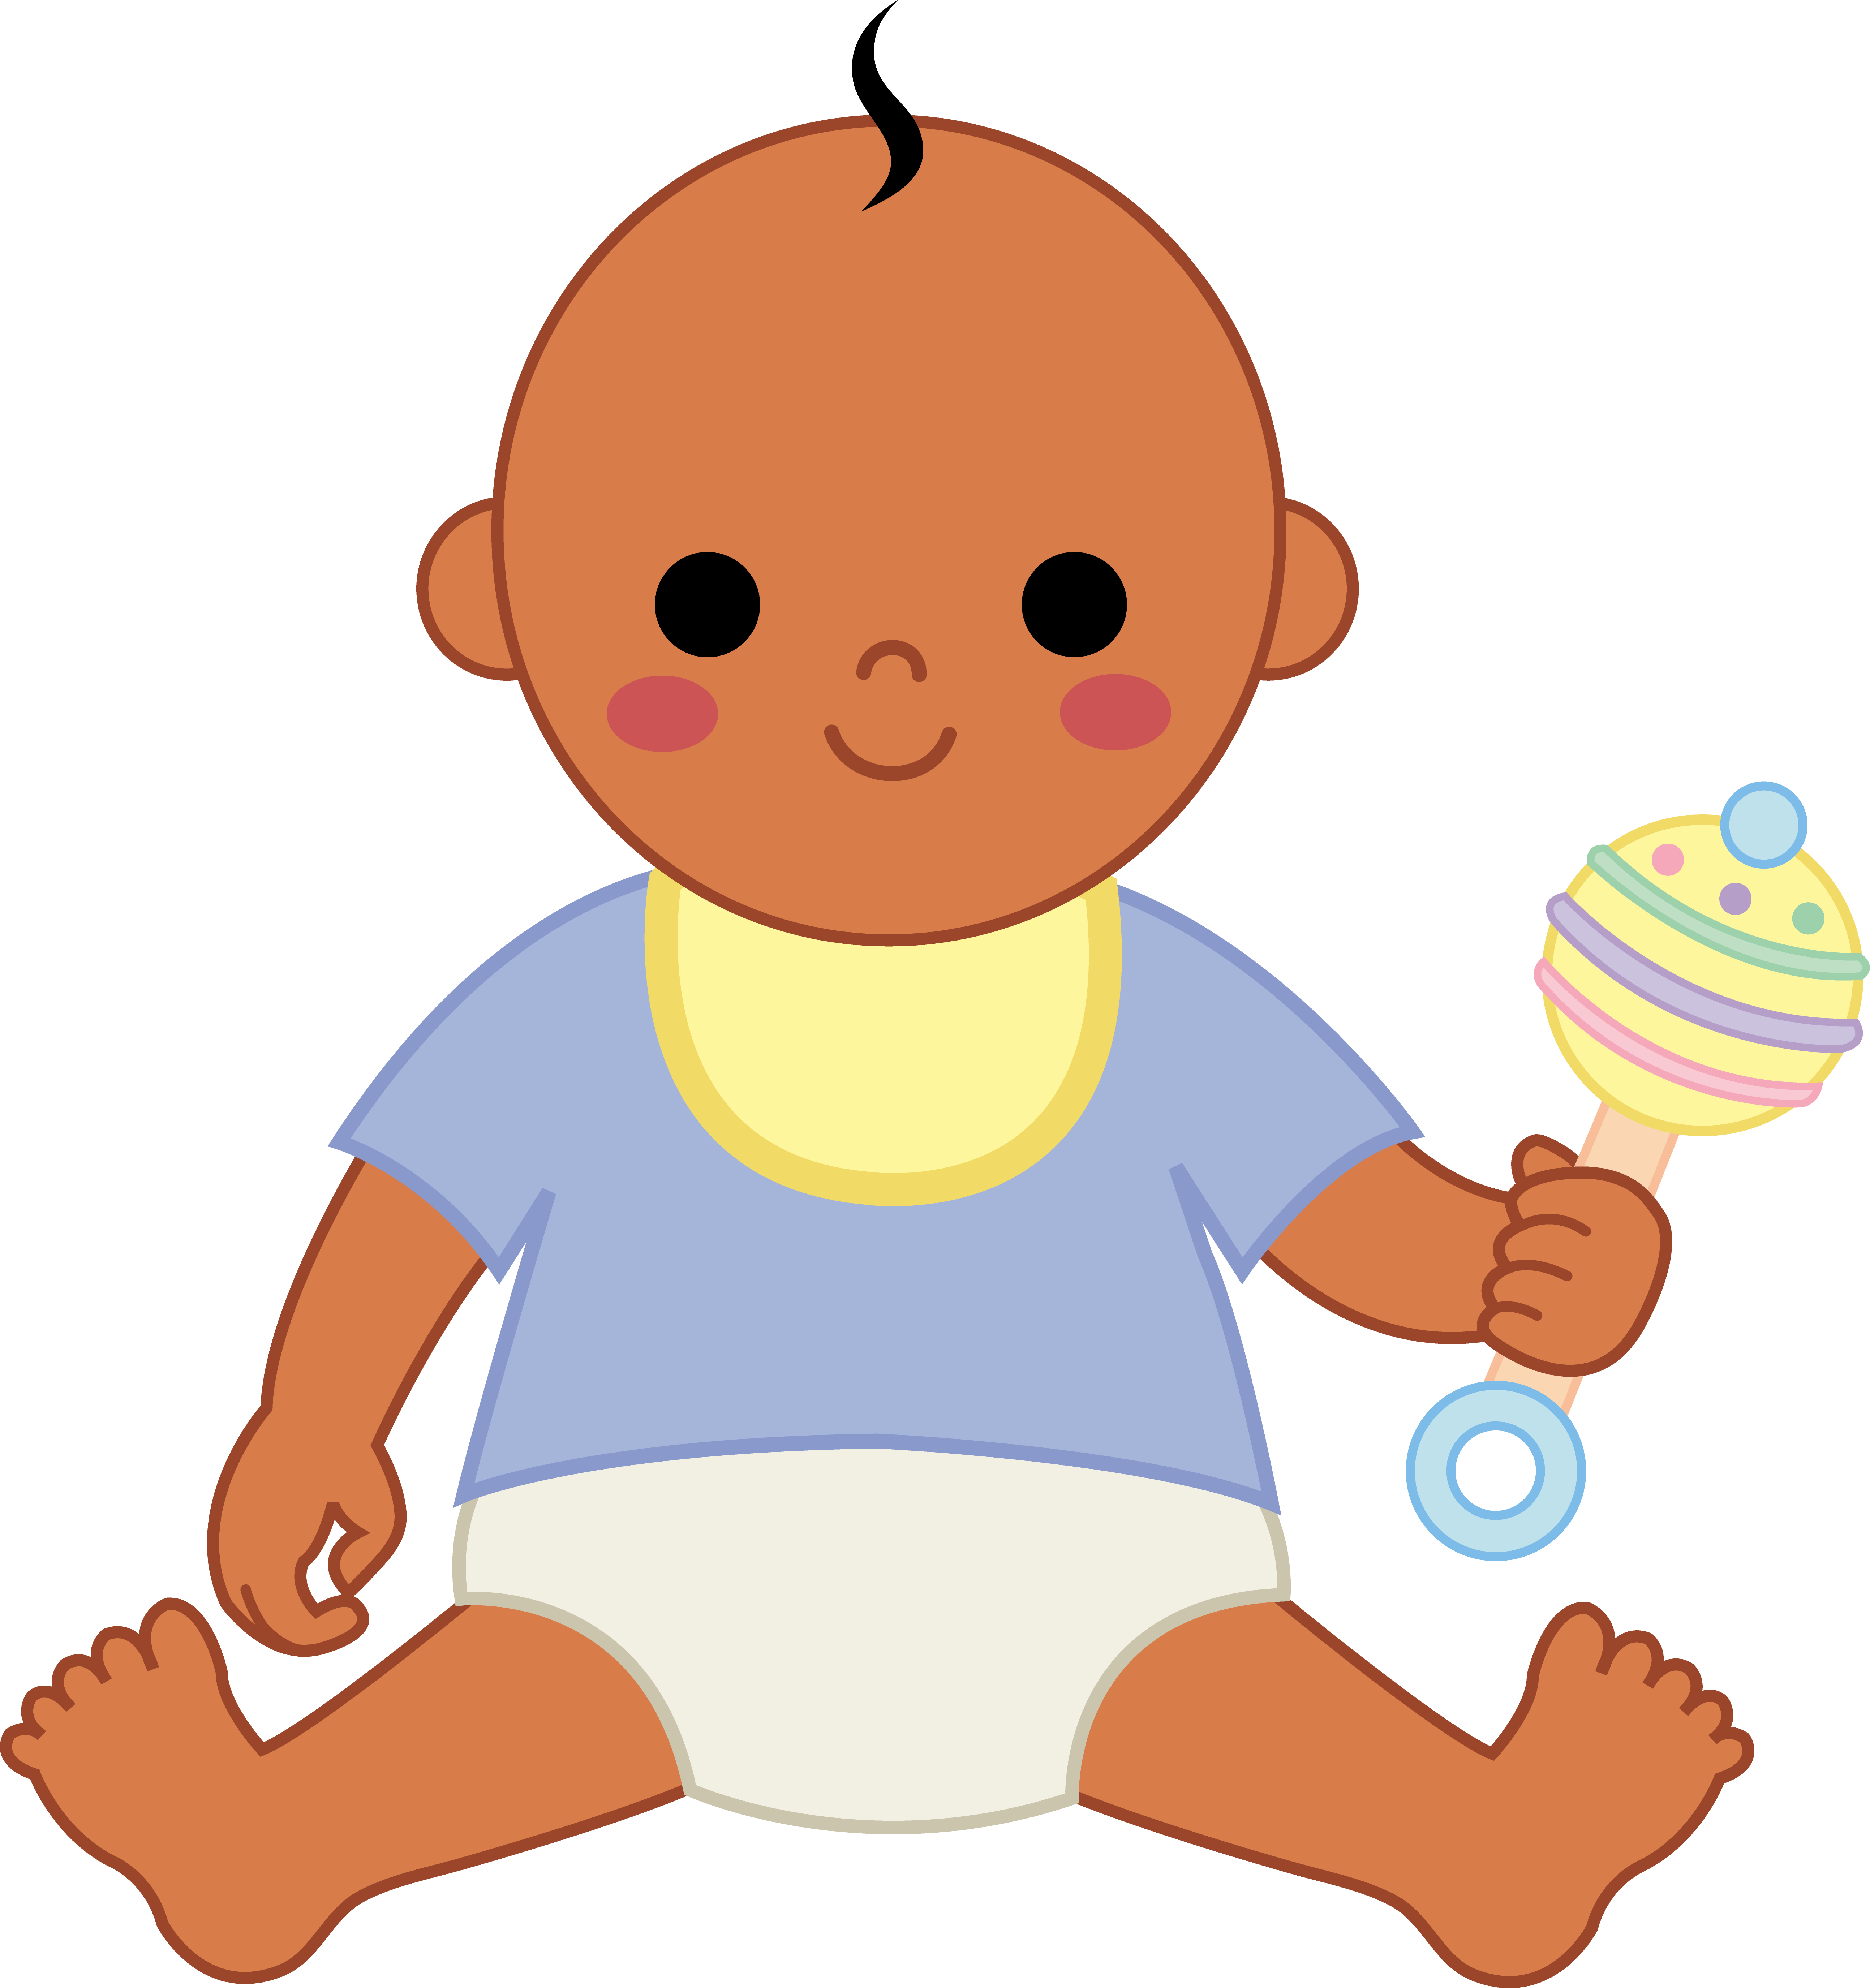 African american baby boys clipart clip art free download Free Black Babies Cliparts, Download Free Clip Art, Free Clip Art on ... clip art free download